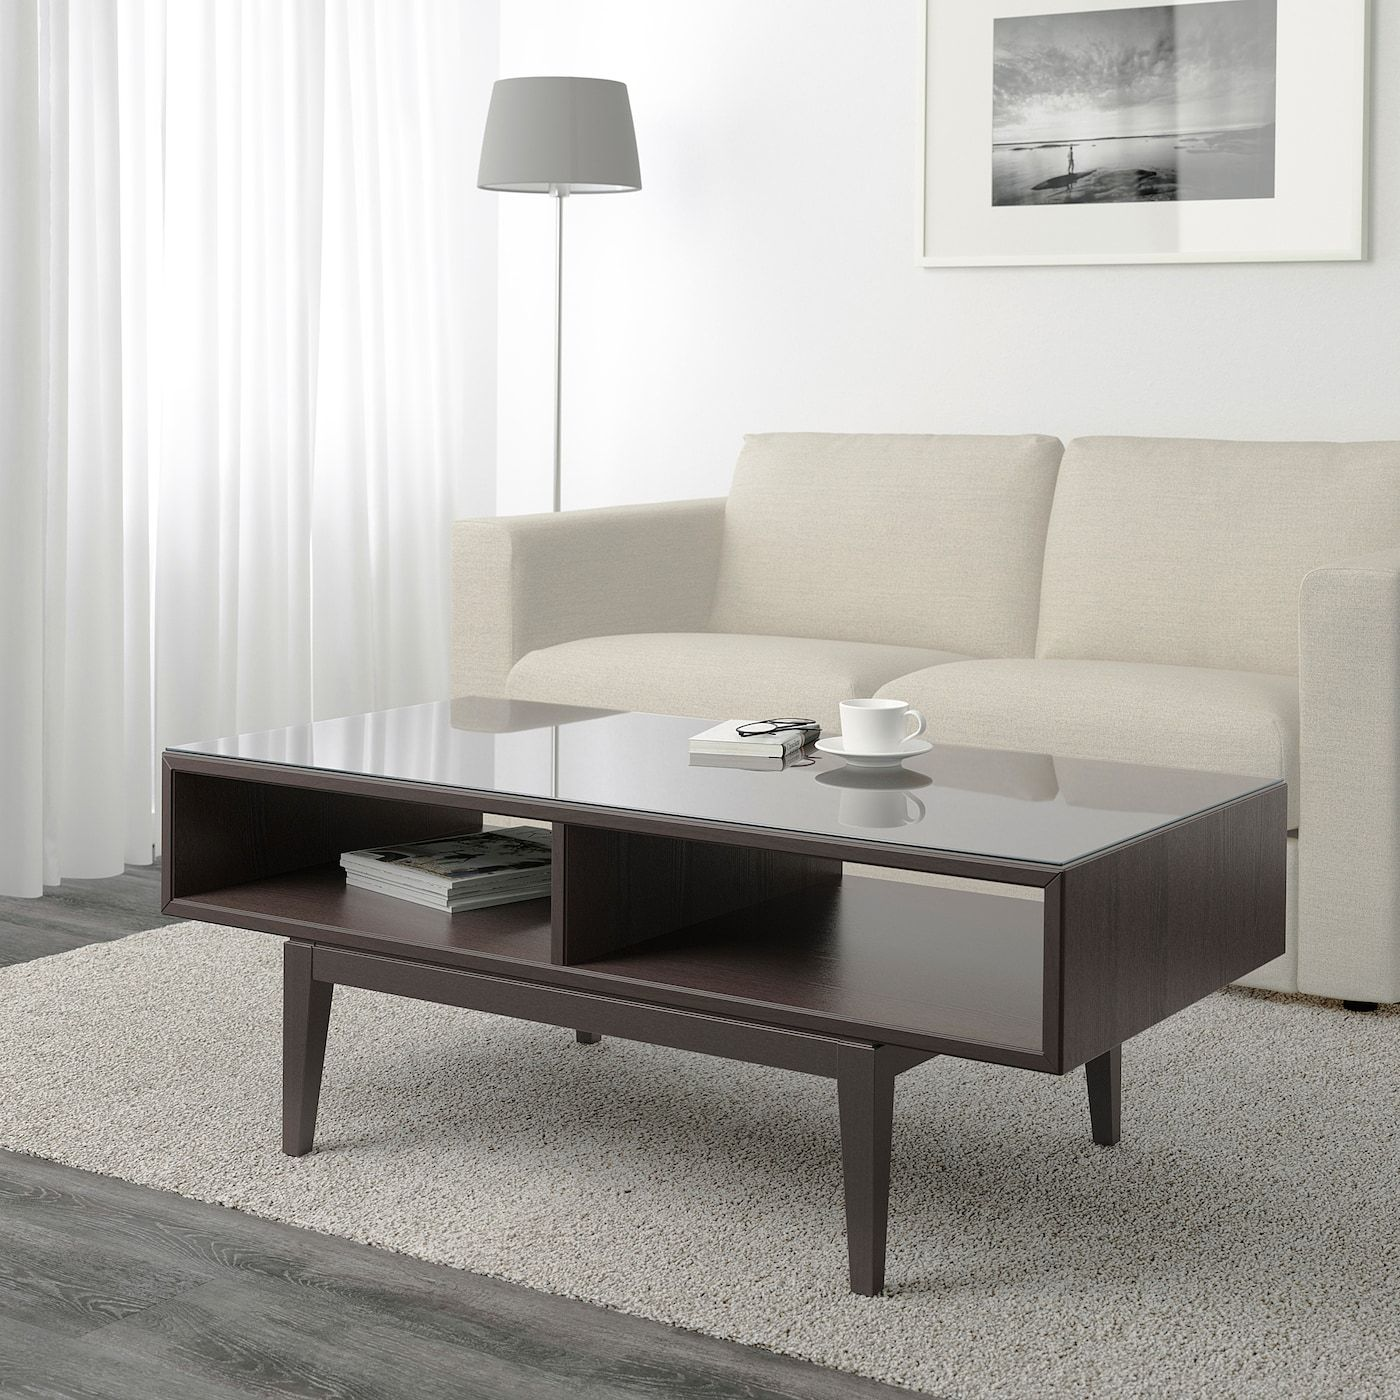 Ikea Couchtisch Mit Glas Ikea - RegissÖr Coffee Table Brown, Glass | Couchtisch Braun, Wohnzimmertische, Ikea Couchtisch